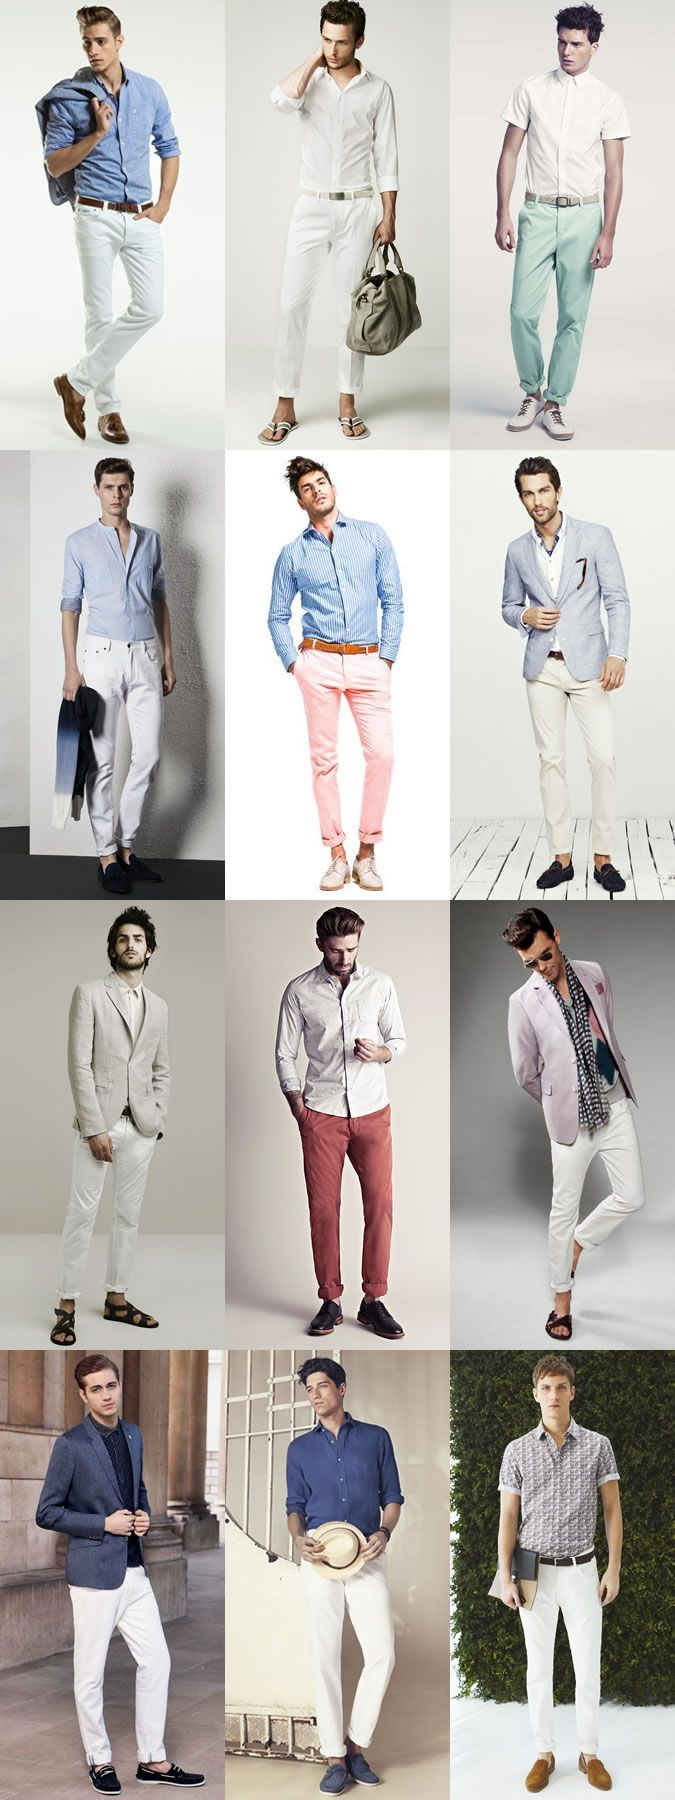 Mens Summer Wedding Guide How To Dress For A Summer Wedding For The Wedding Abroad Lookbook